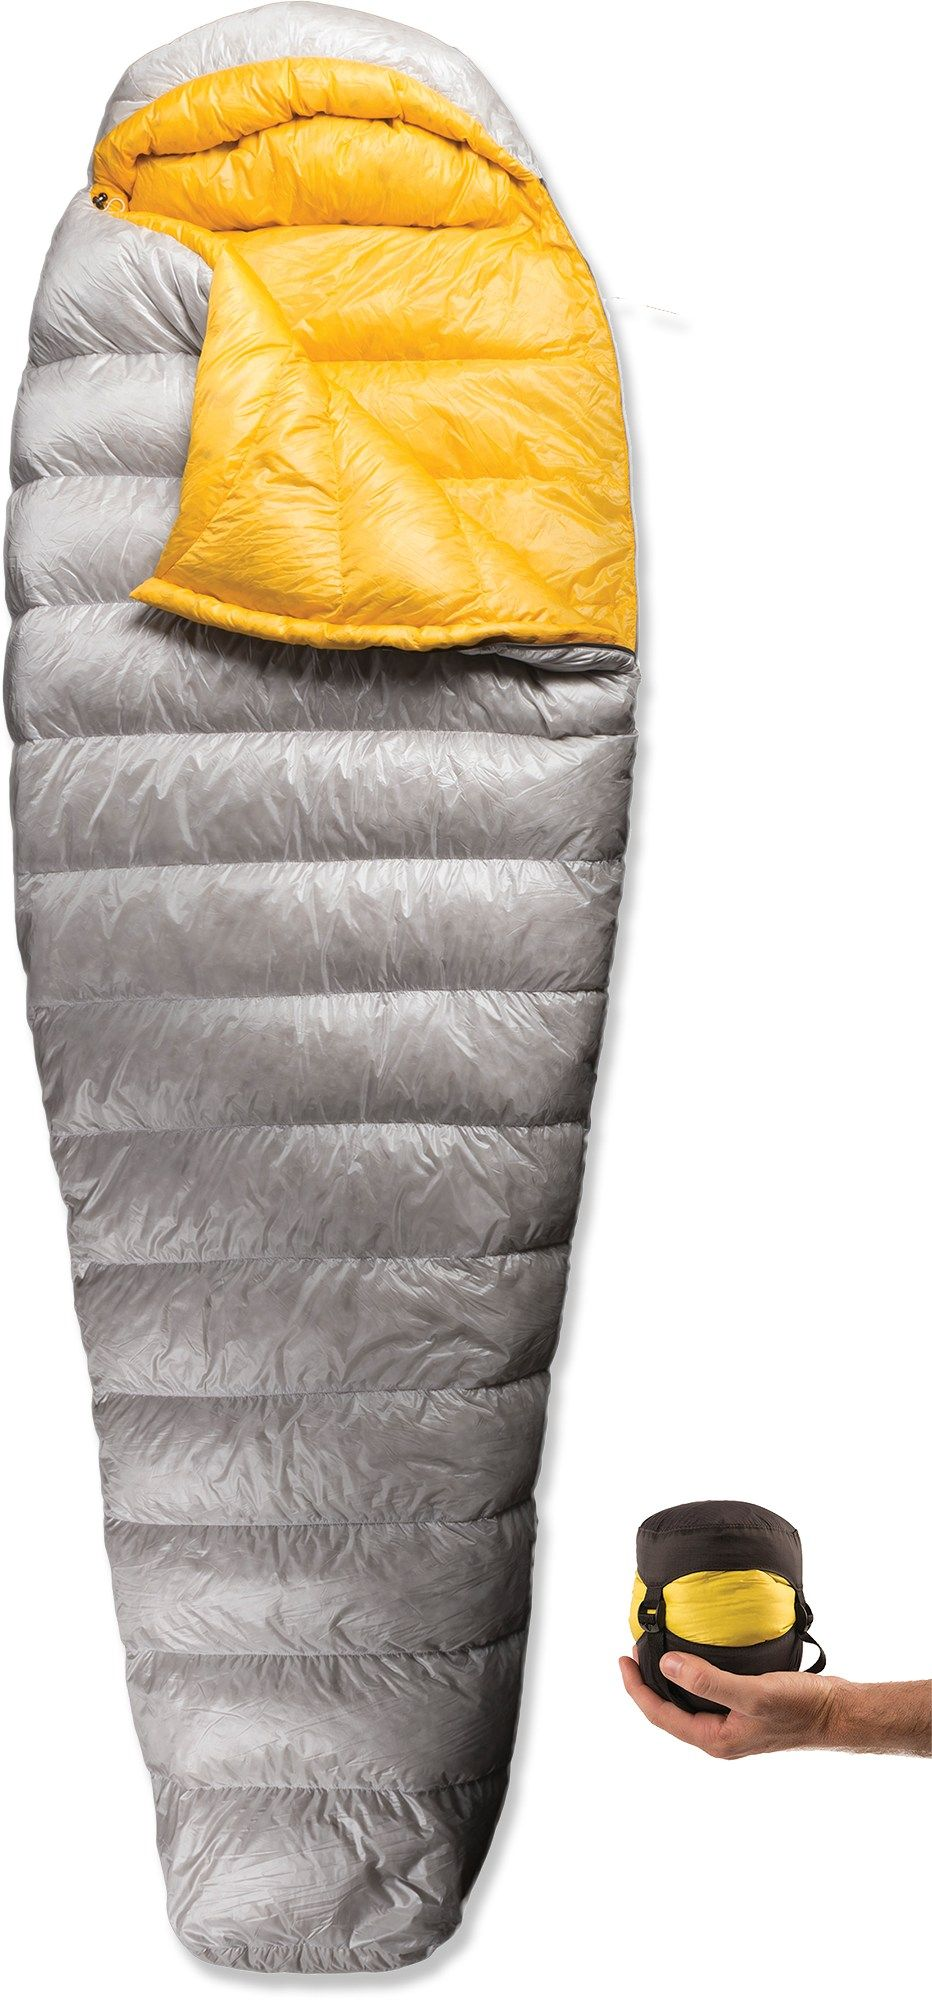 Sea to Summit Spark SpI Sleeping Bag Silver Long